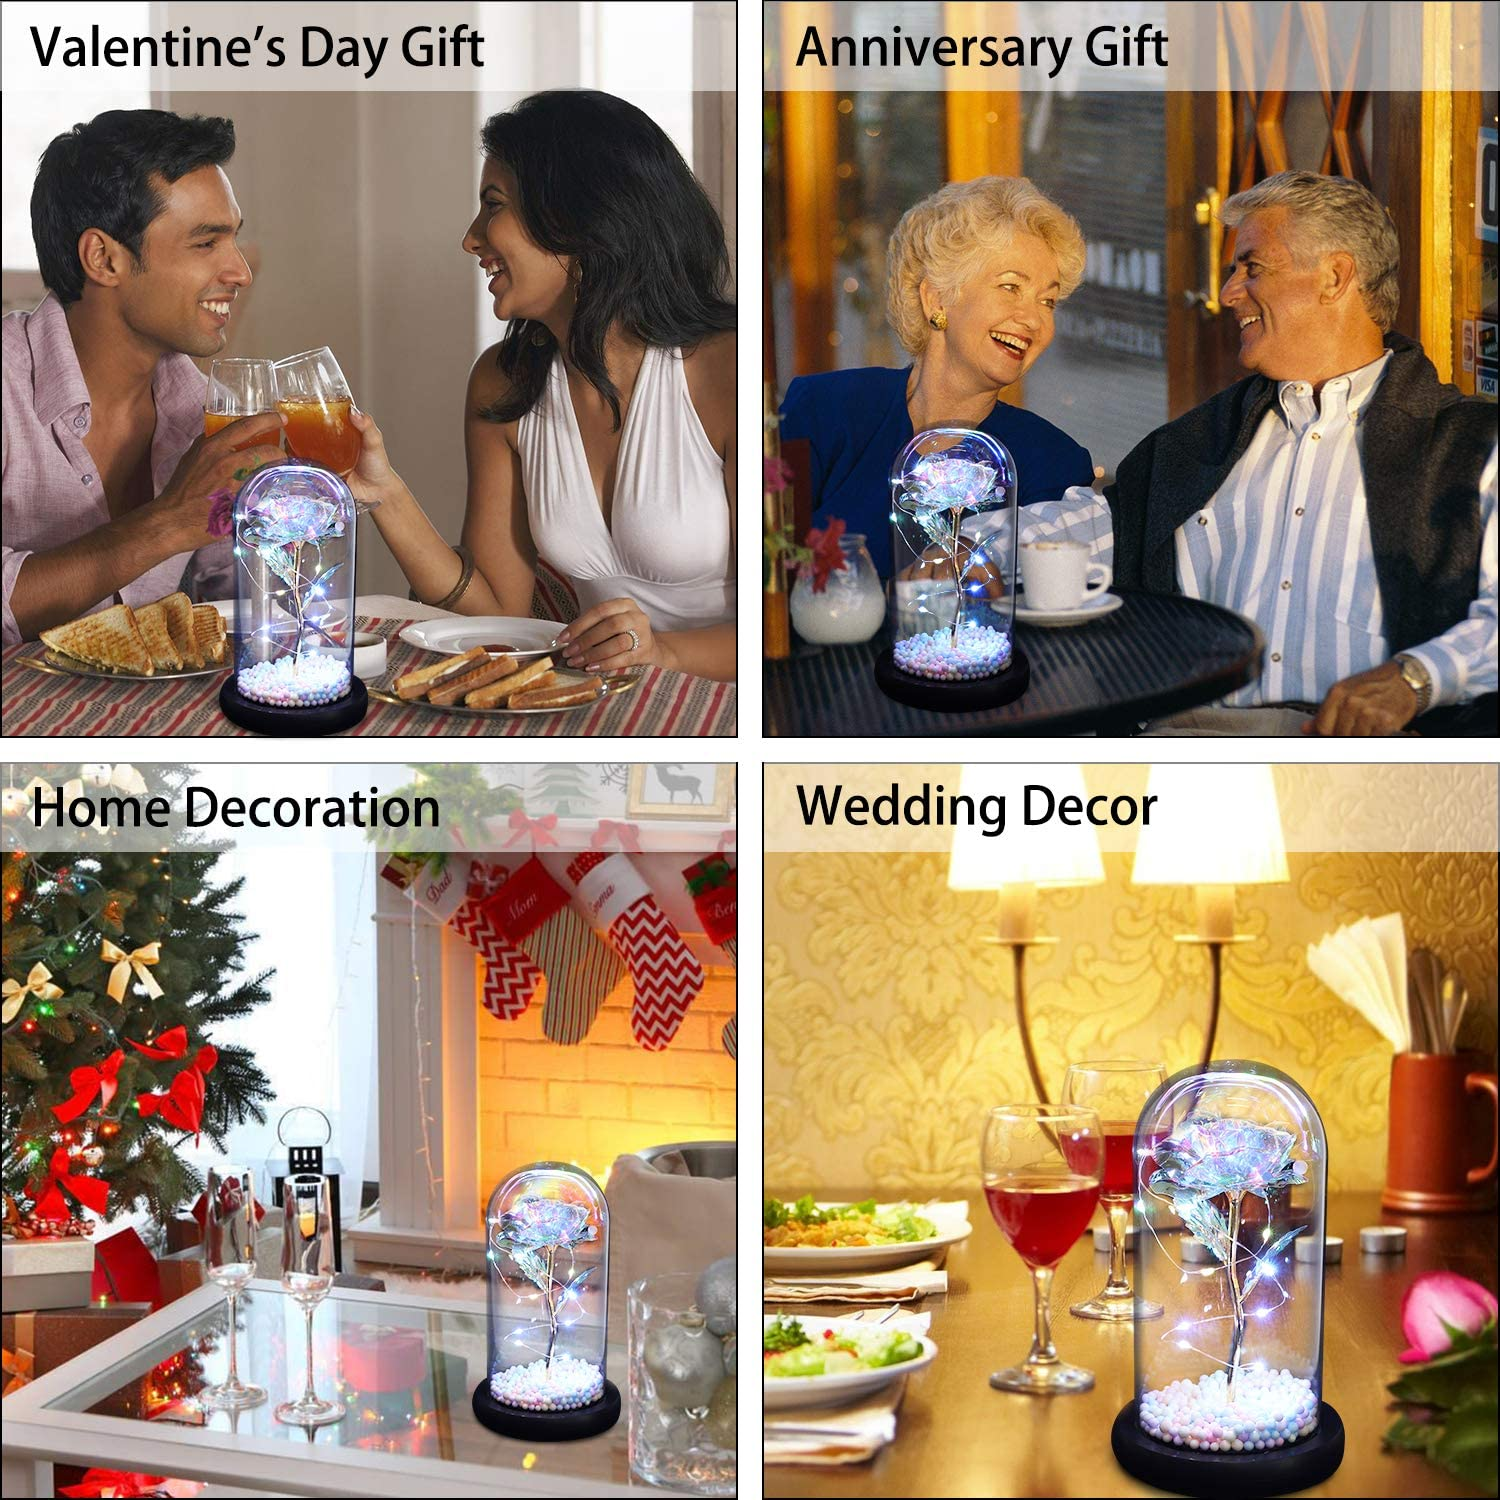 Plus the Word Art of Love is the Most Loved Gift for Valentines DayArtificial Proposal. Flowers Representing Permanent Love And Sweetness Among Couples,For Valentine/'s Day Wedding N/&T NIETING DIY Beautifully Packaged With Base and Led Lights